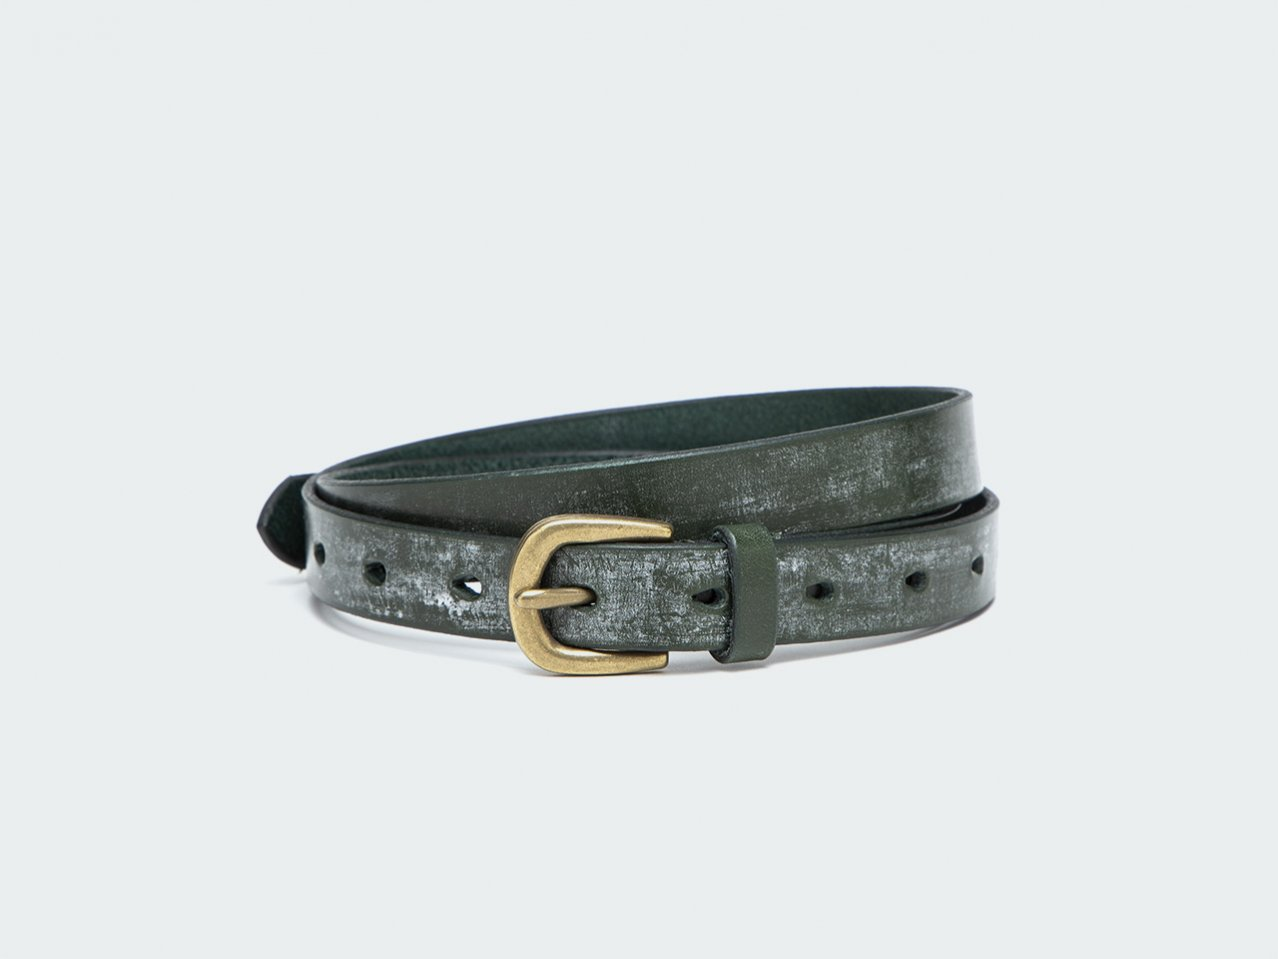 NARROW STANDARD (Bridle) 20 / GREEN